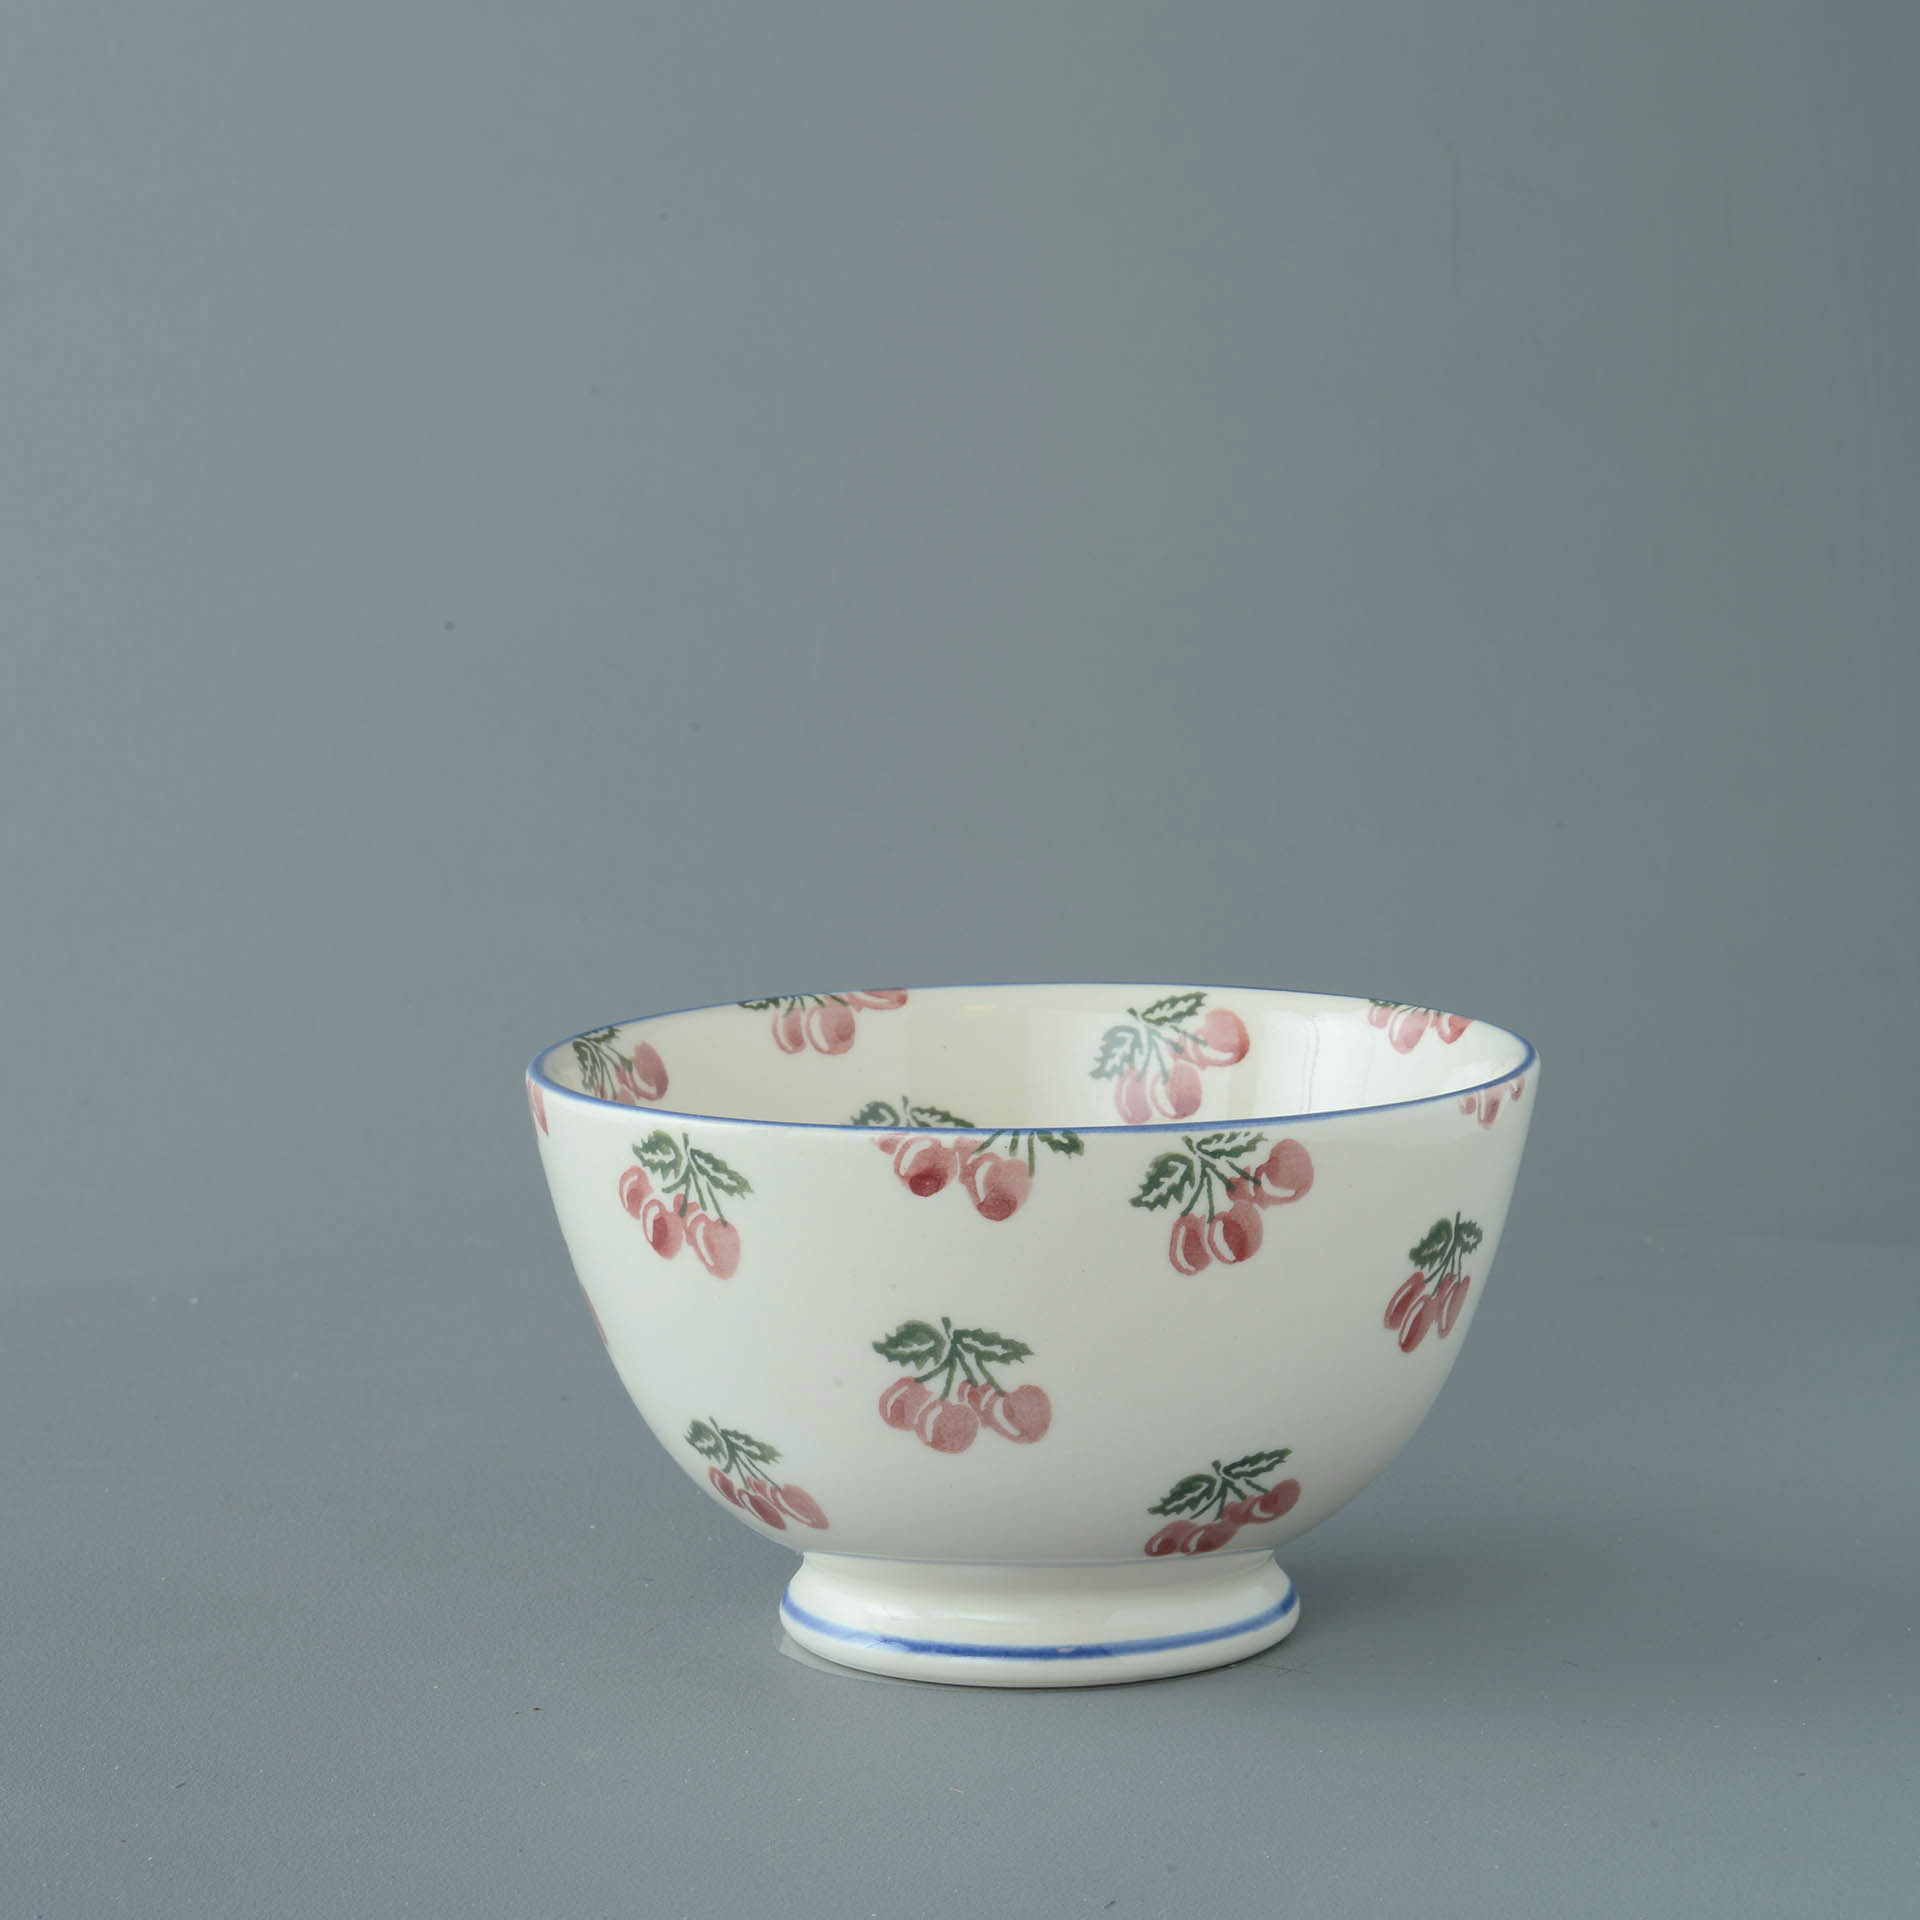 Cherries Soup Bowl 9 x 15.5cm